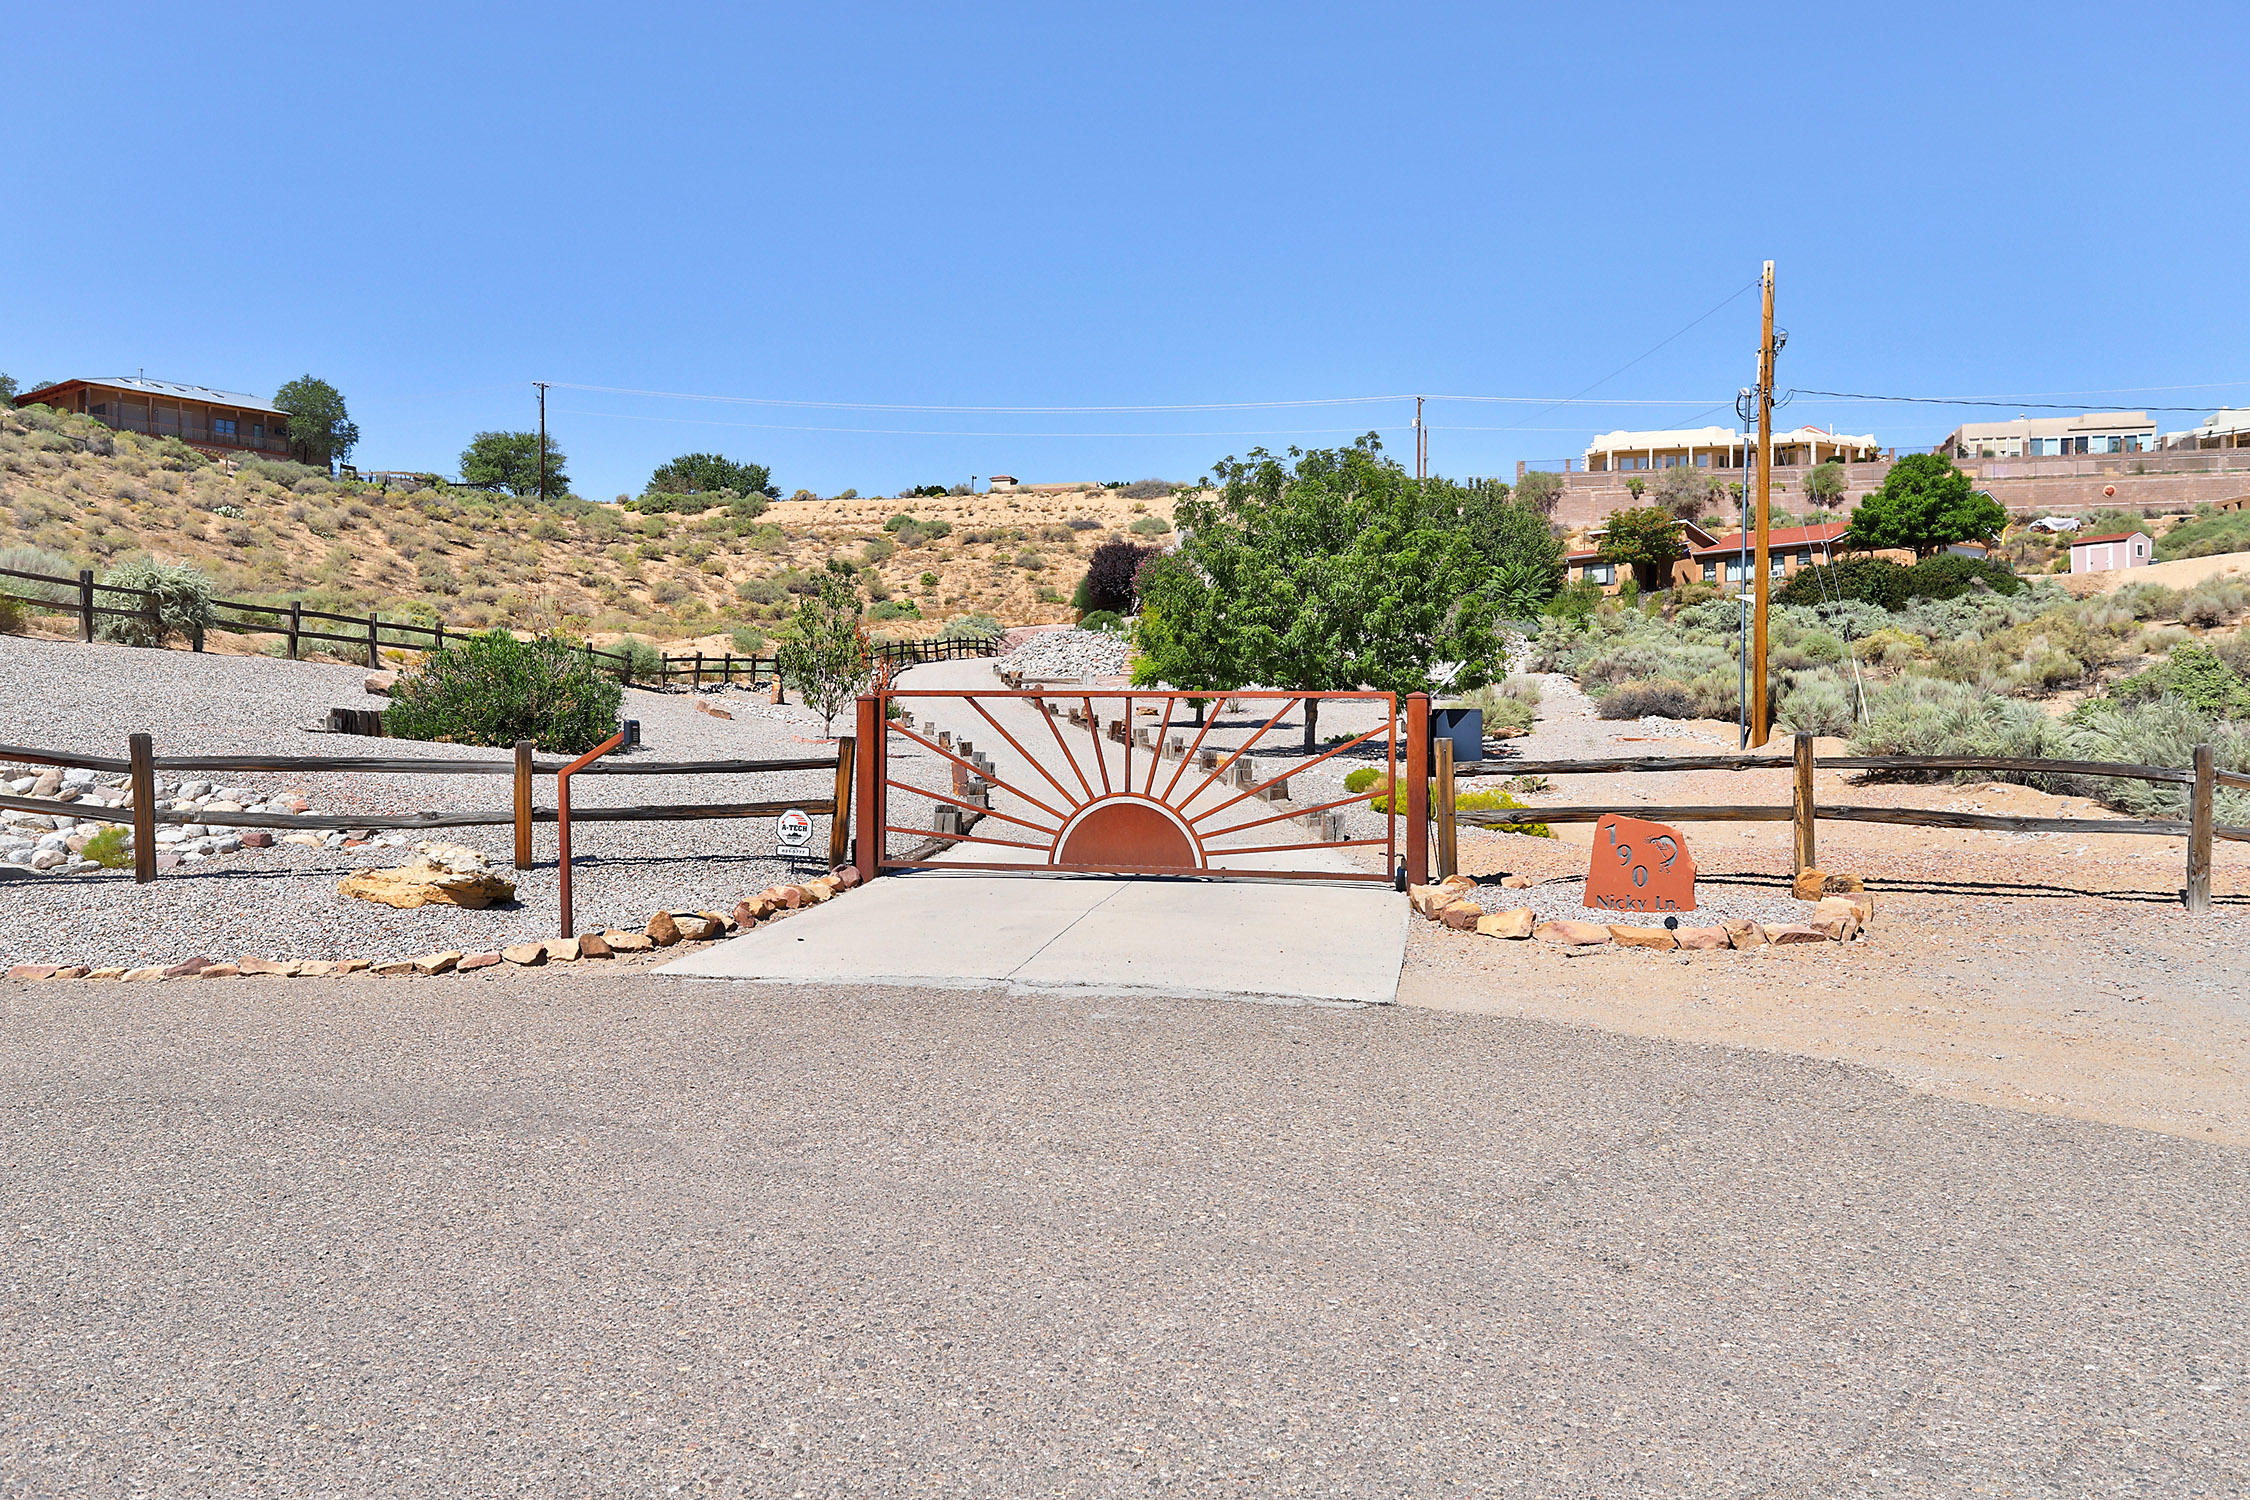 Beautiful custom Rachael Matthew home with views to die for! Perfect location at the end of the road-drive up thru the gate onto your fenced and landscaped acre lot to your private oasis. Wonderful open floorplan greets you with windows to the patio and extensive views. Spacious great room with raised beamed and Latilla ceiling, open to the kitchen and formal dining room. Ample counter space and island too. SS appliances, lots of cabinets & pantry too. Wine cooler, tile floors throughout the entire house. The patio feels like a 2nd living area-very lush with waterfall, very private, and an outdoor kitchen!  2 nice size bedrooms down, wonderful master suite upstairs with private view and relaxing deck.  Spa-like master bath!  Add a 3 car garage and you've got your Southwest Oasis!